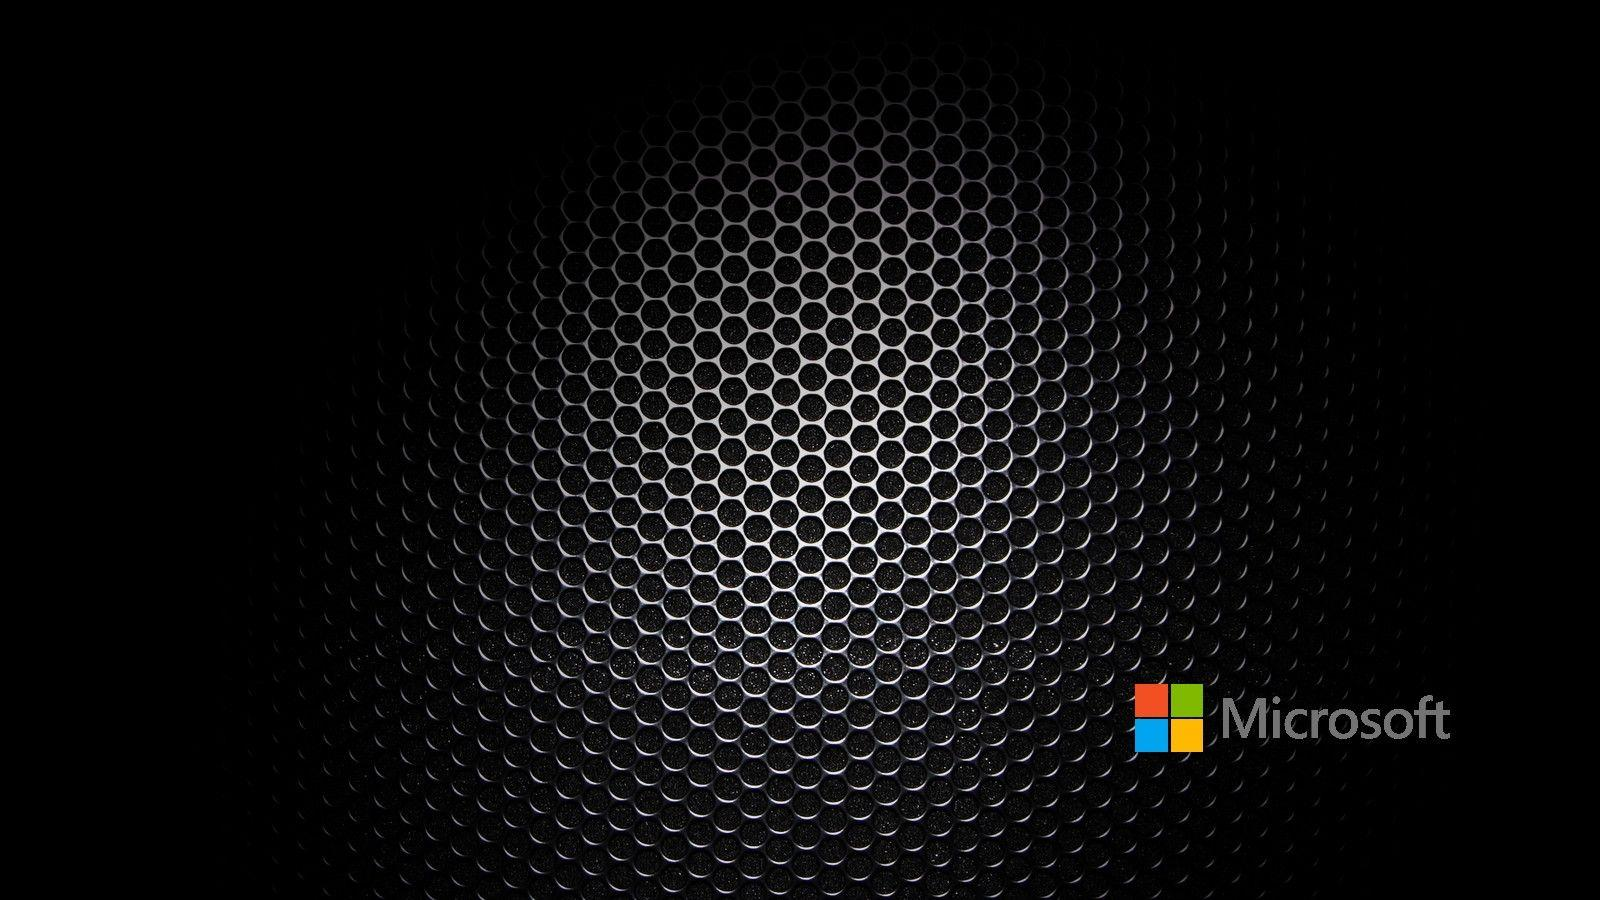 Microsoft Wallpapers 2013 Desktop 10053 HD Pictures